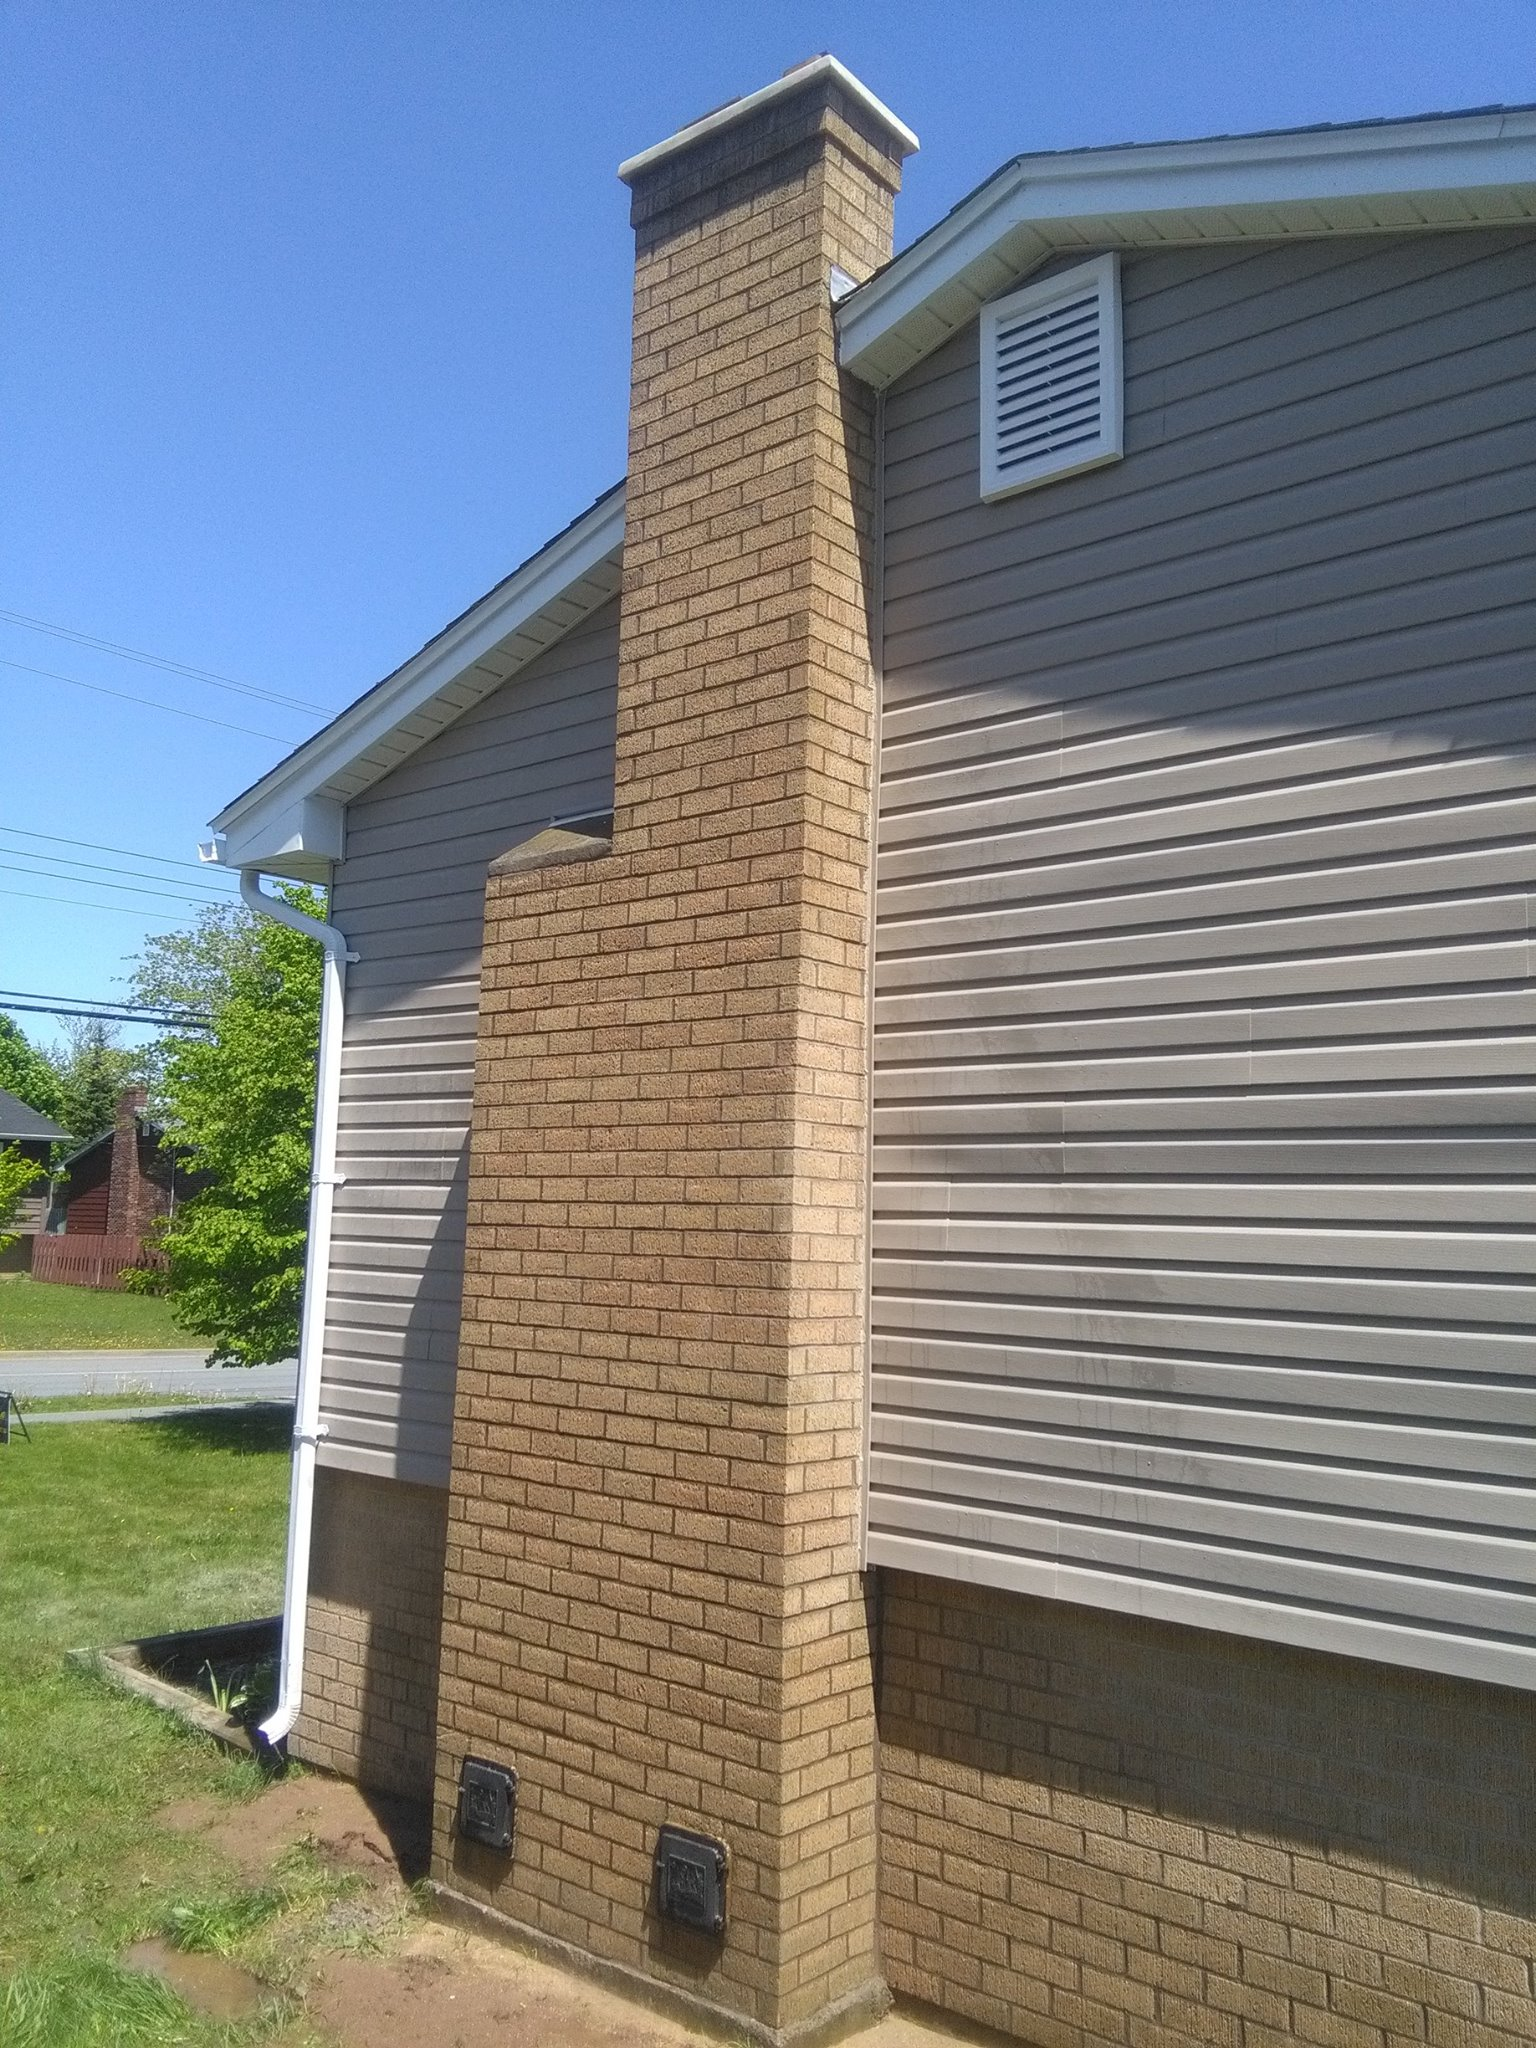 image of chimney repair-masonry chimney repair services completed in Halifax, NS by Pro Chimney Services based in Halifax, NS servicing all of the Halifax-Dartmouth Regional Municipality, Bedford, Sackville, Mount Uniacke, Hantsport, Windsor, Wolfville, Kentville, Chester Basin, Mahone Bay, Lunenburg, Bridgewater, Liverpool, Fall River, Wellington, Enfield, Elmsdale, Brookfield, Truro, Musquodoboit Harbour & surrounding areas.